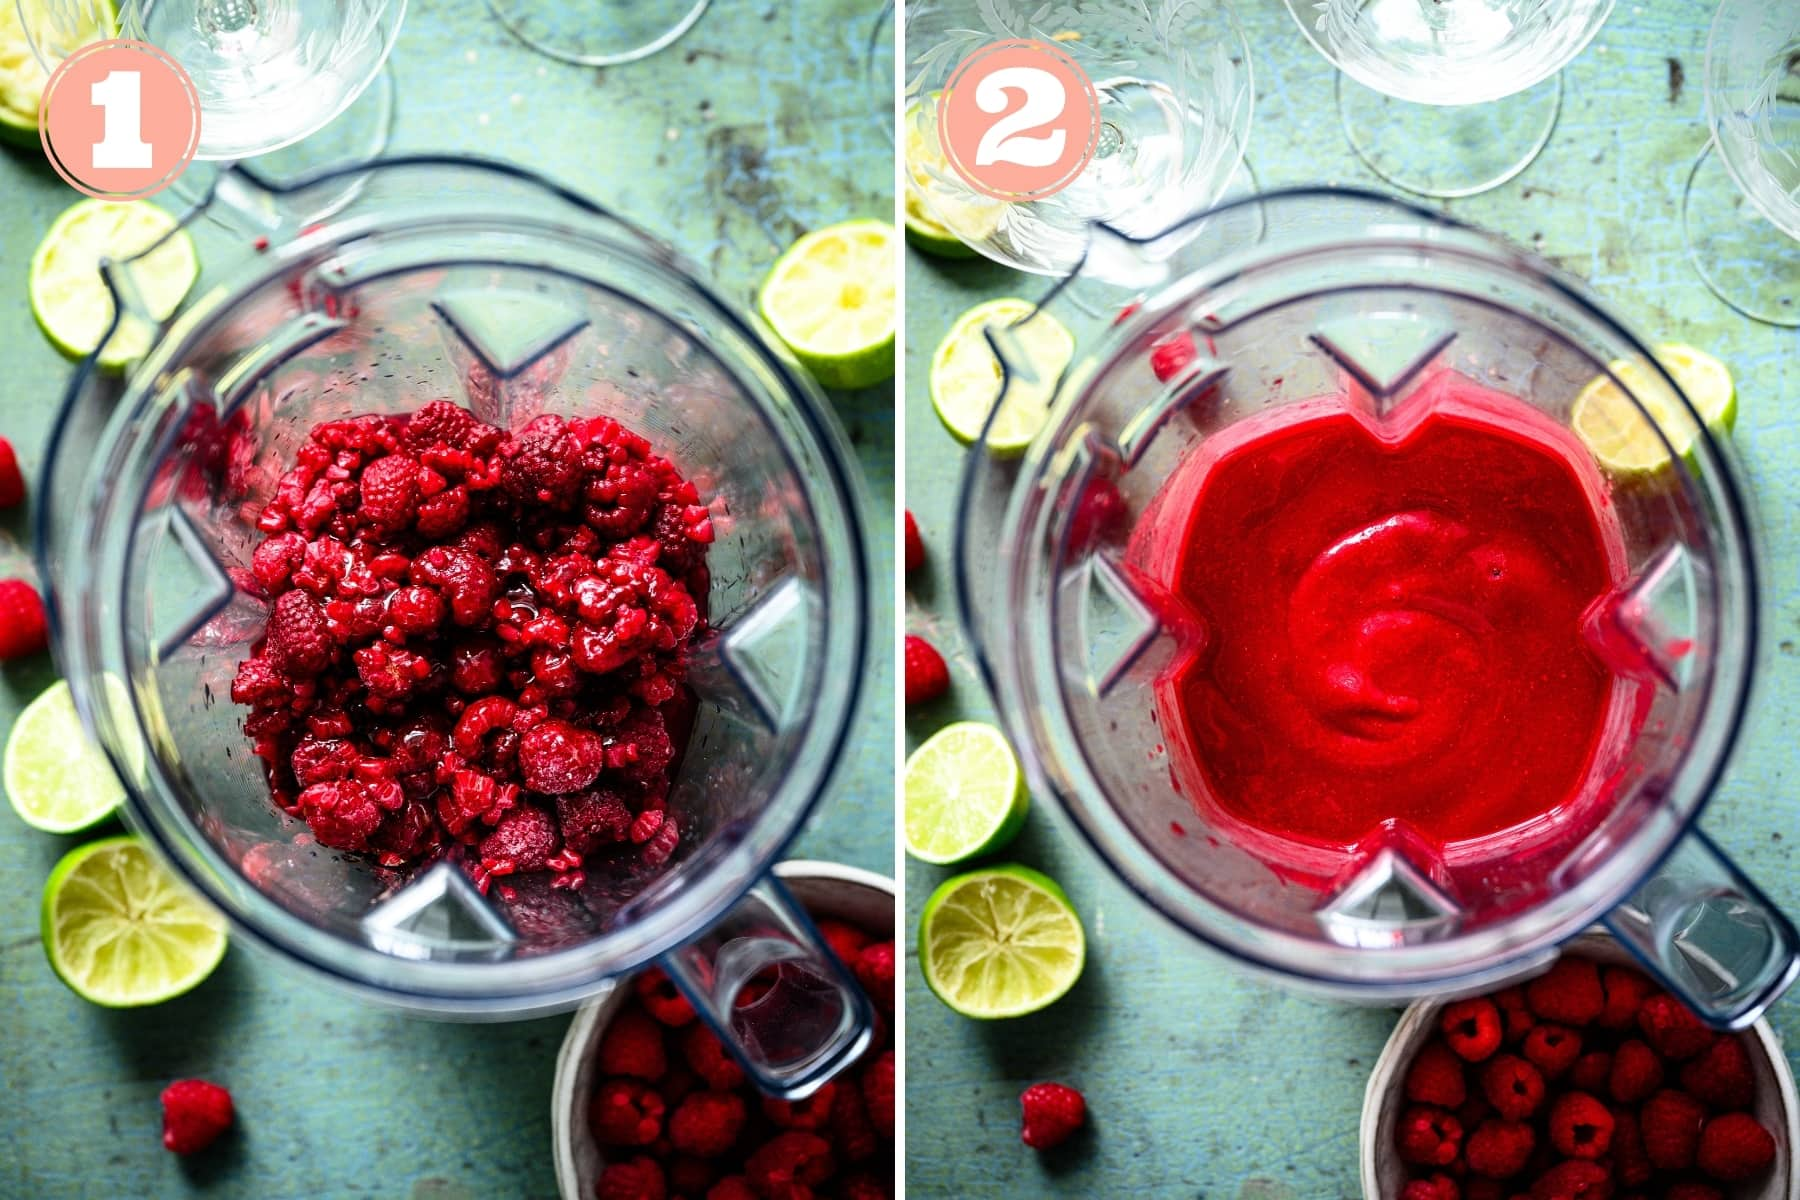 before and after blending raspberry daiquiri in blender.